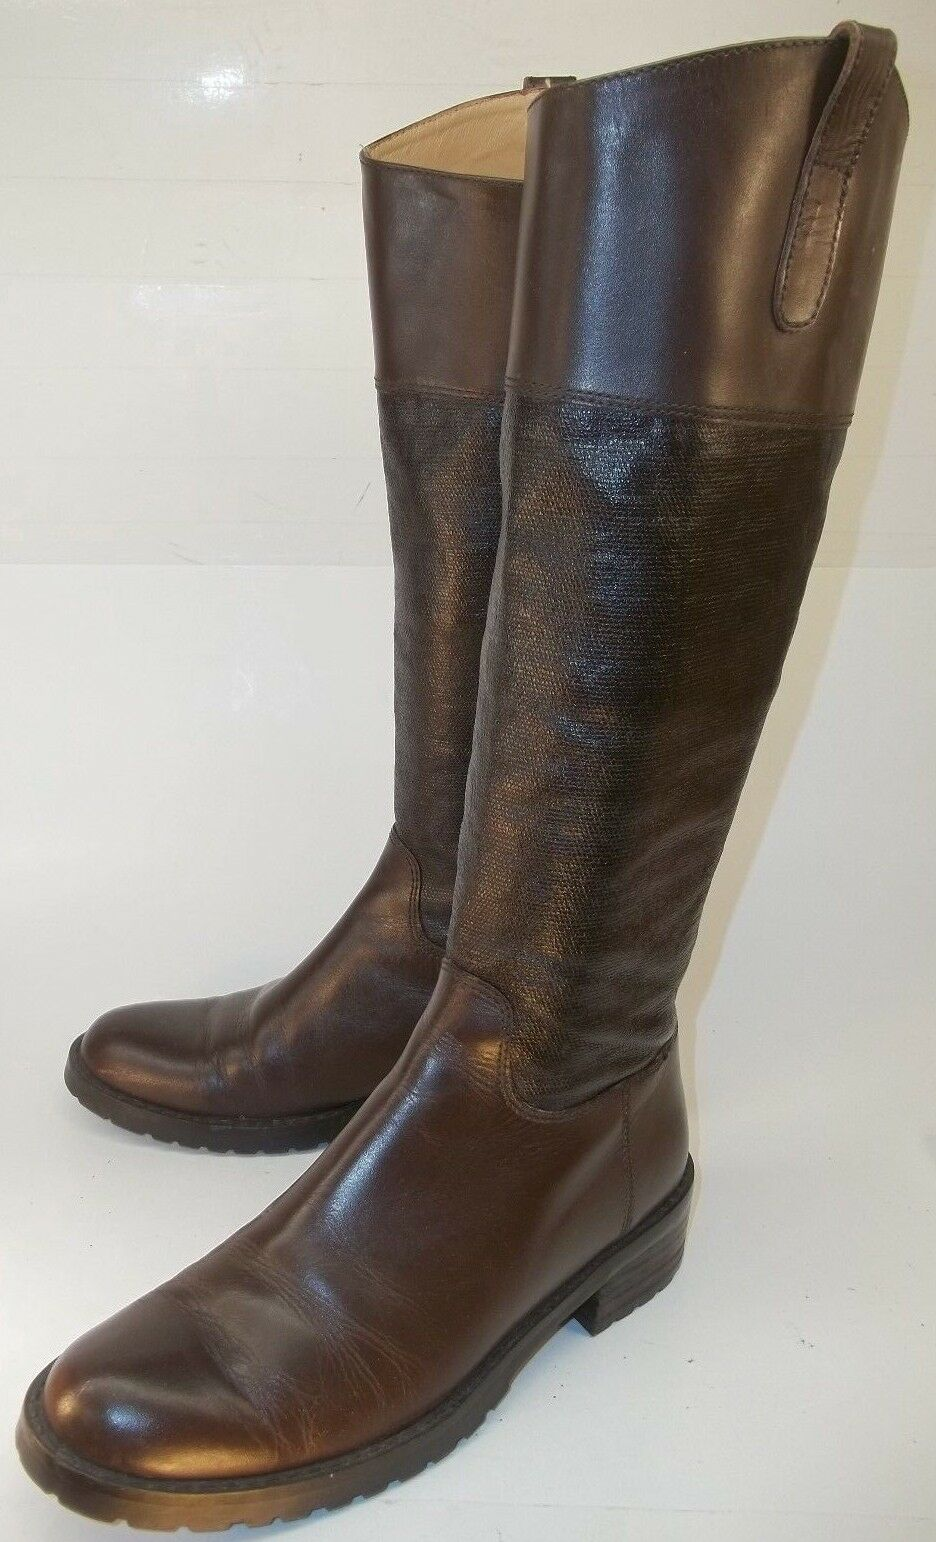 Studio Pollini Wo's US 5.5 Brown Leather Textured Zip tall Riding Boots